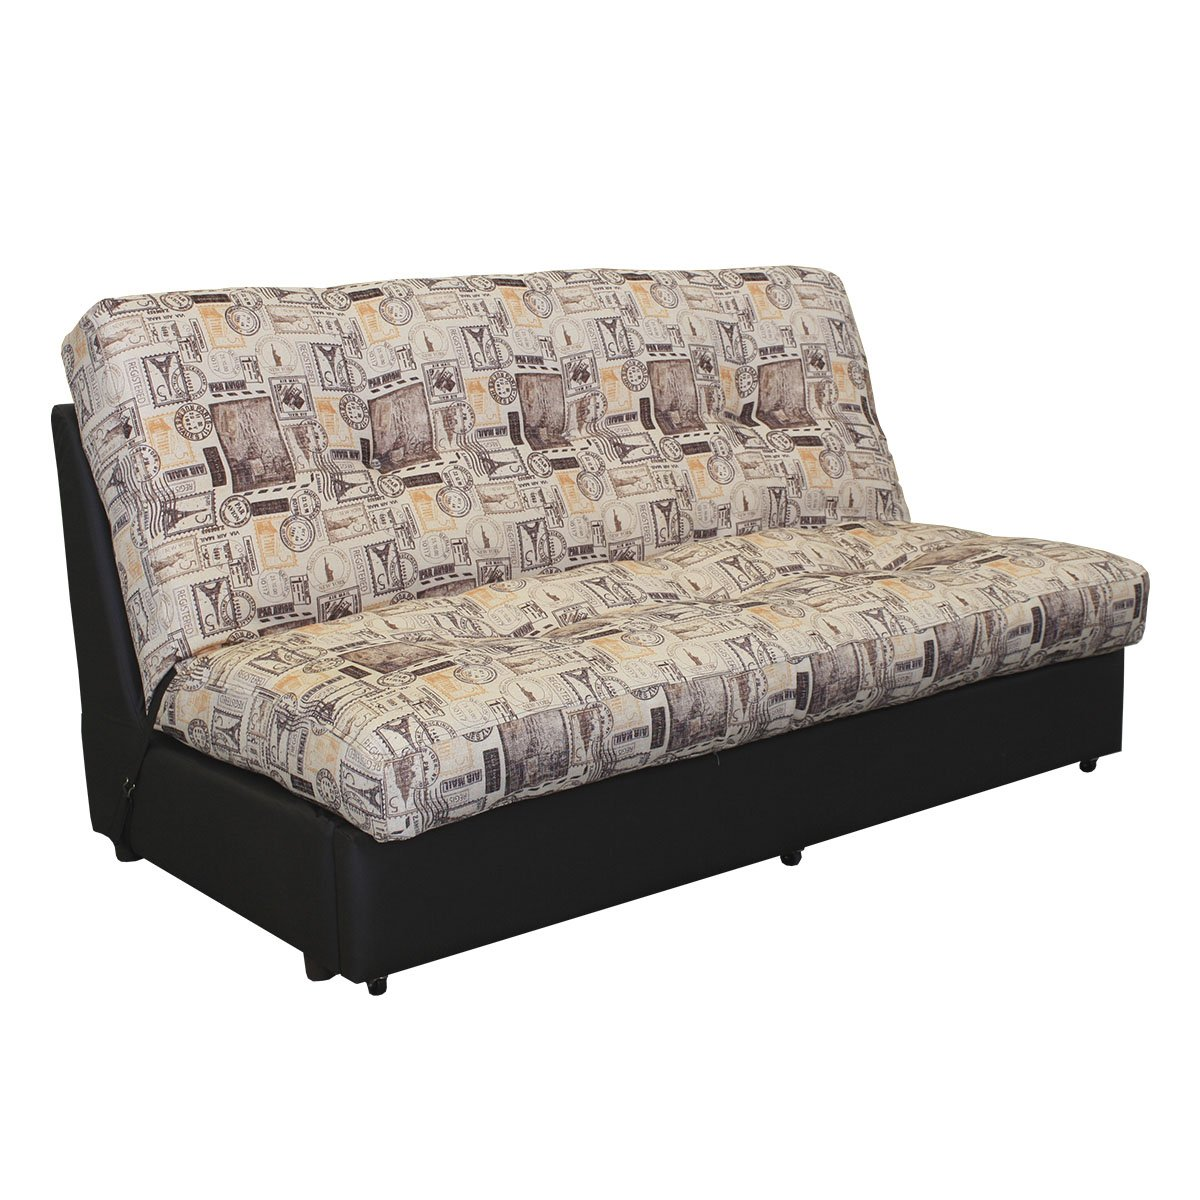 Sofa cama sofas camas sofa brownsvilleclaimhelp thesofa for Sofas cama italianos baratos